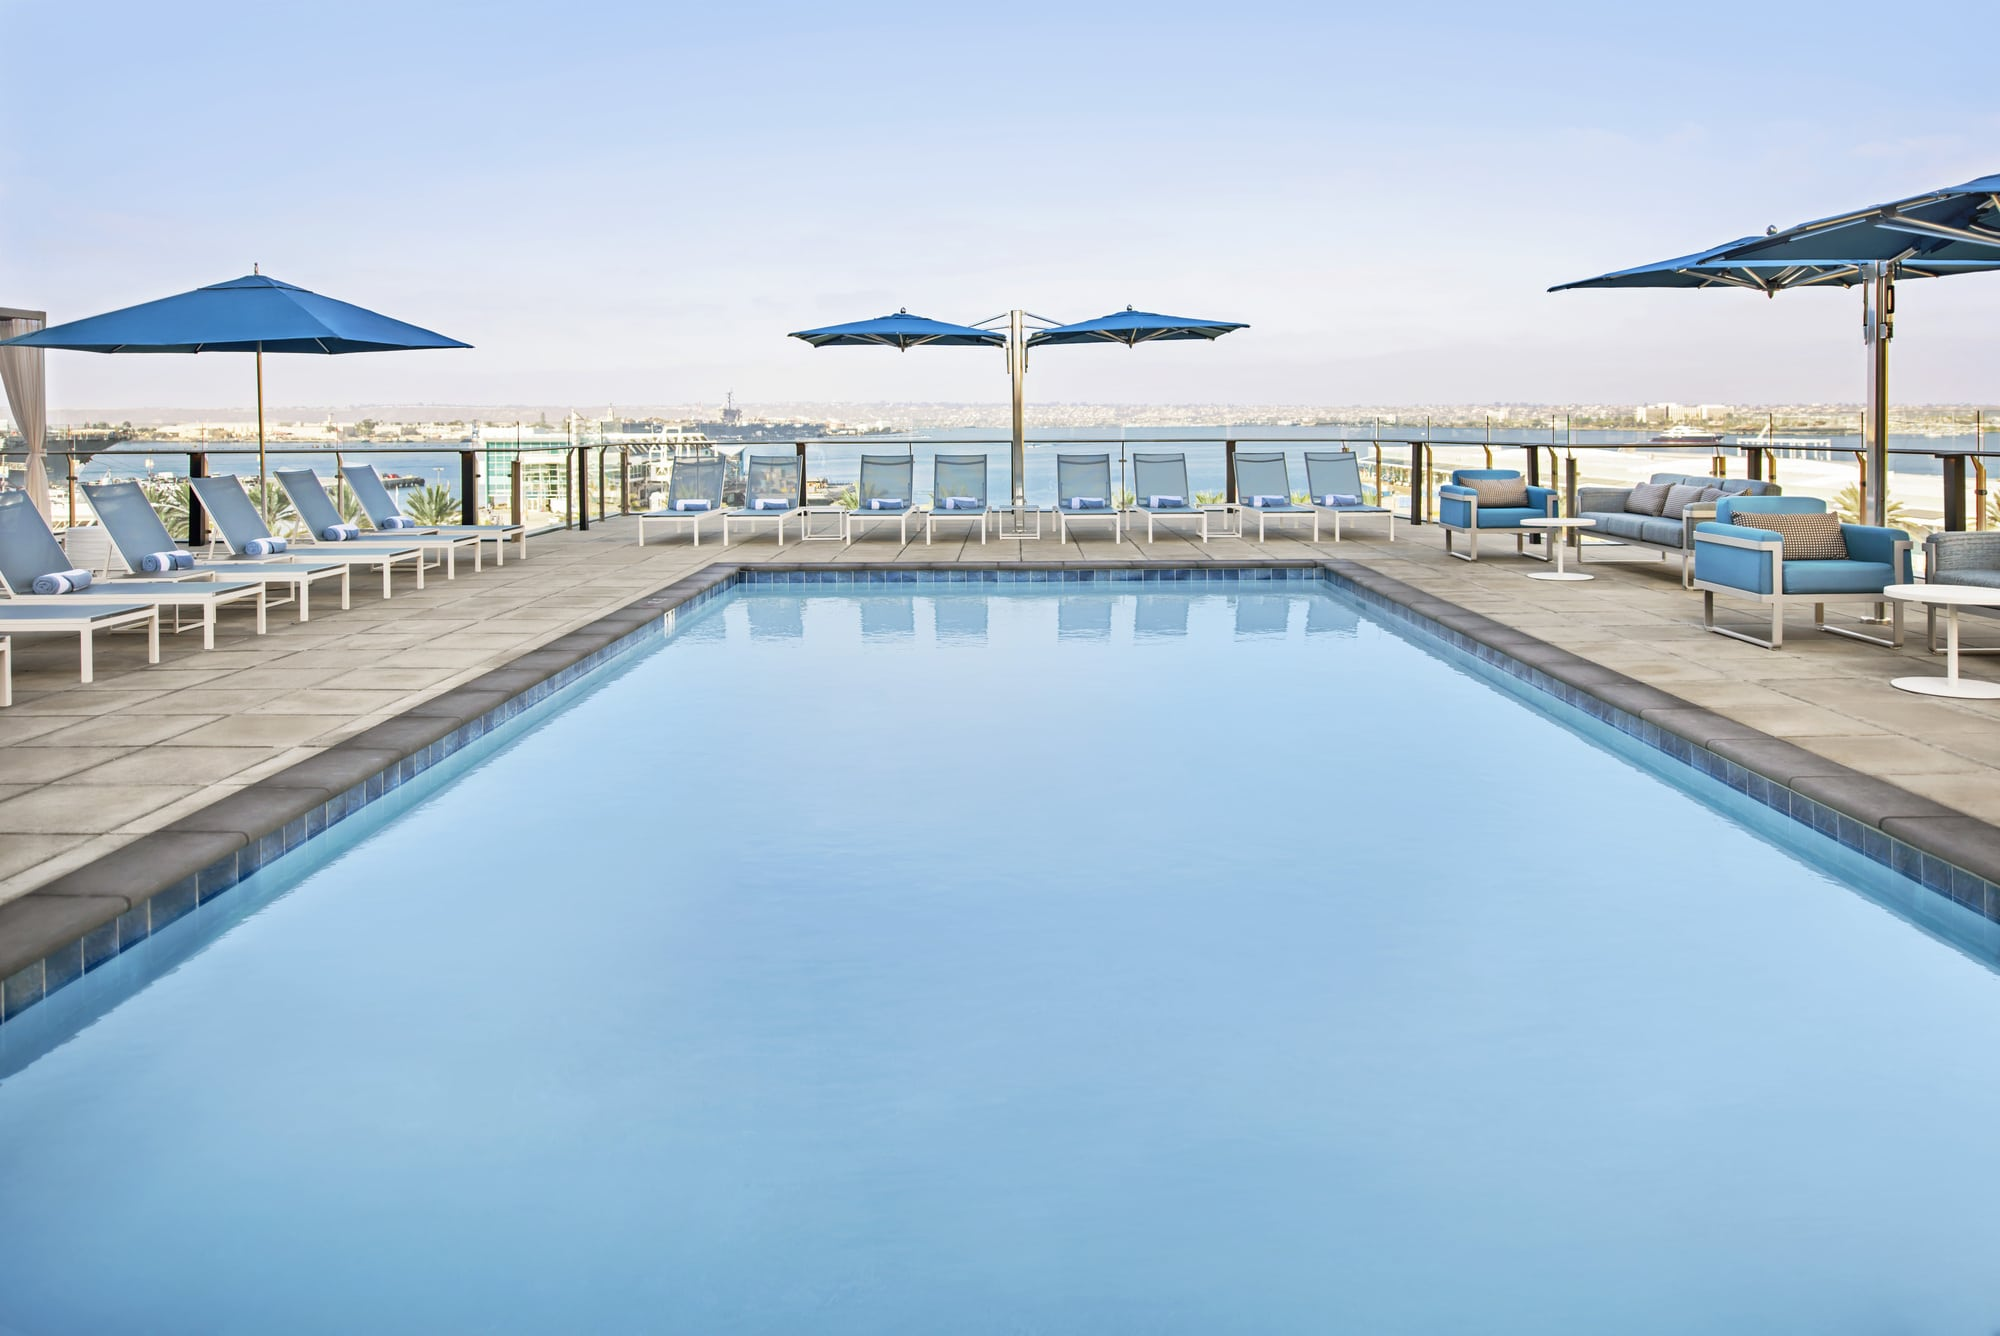 Open-air pool deck surrounded by lounge chairs, overlooking San Diego Bay.